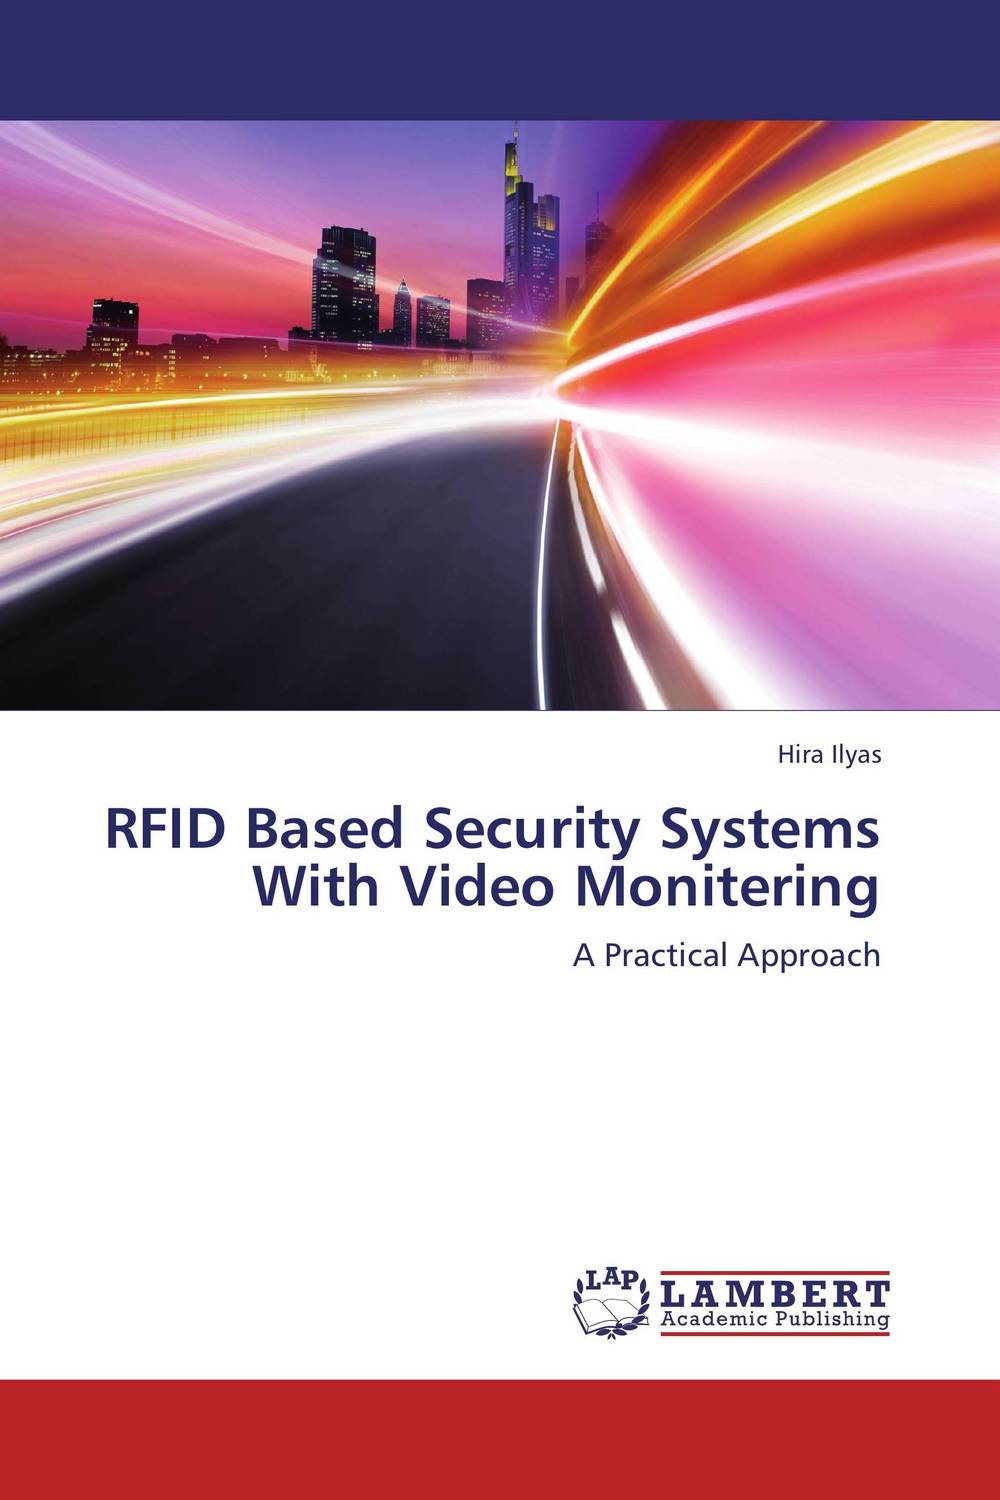 RFID Based Security Systems With Video Monitering zhishun wang and qifei lu a method for analyzing security of soa based systems